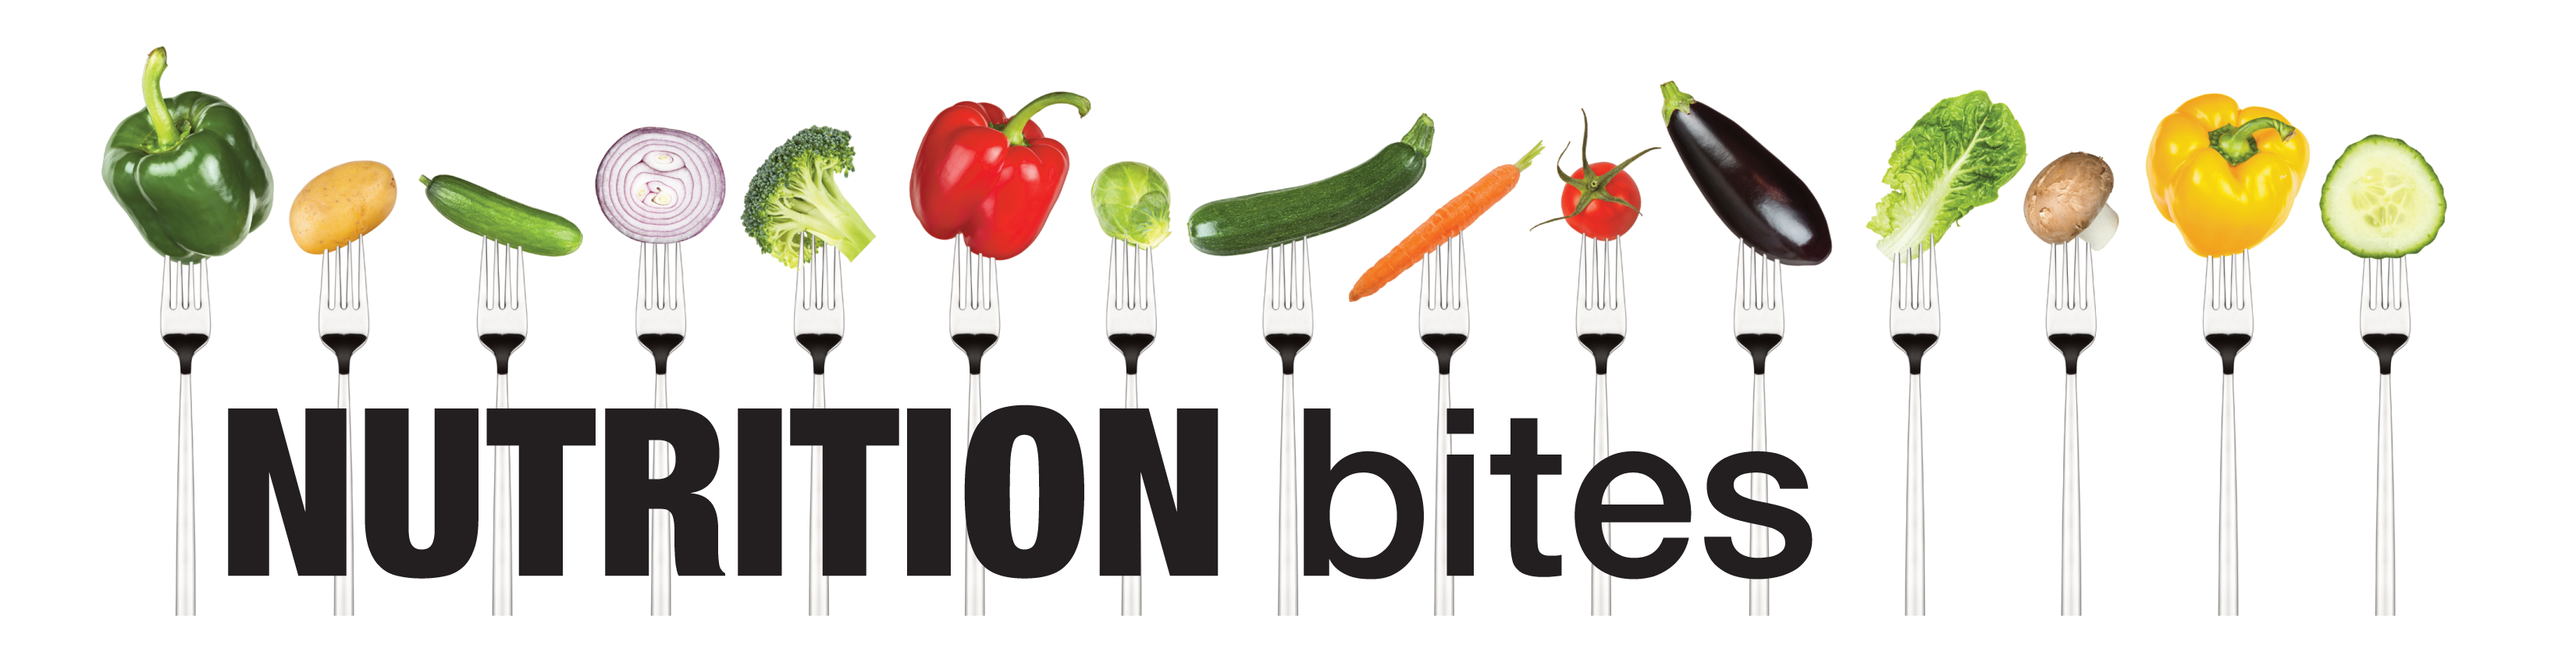 nutrition bites page banner